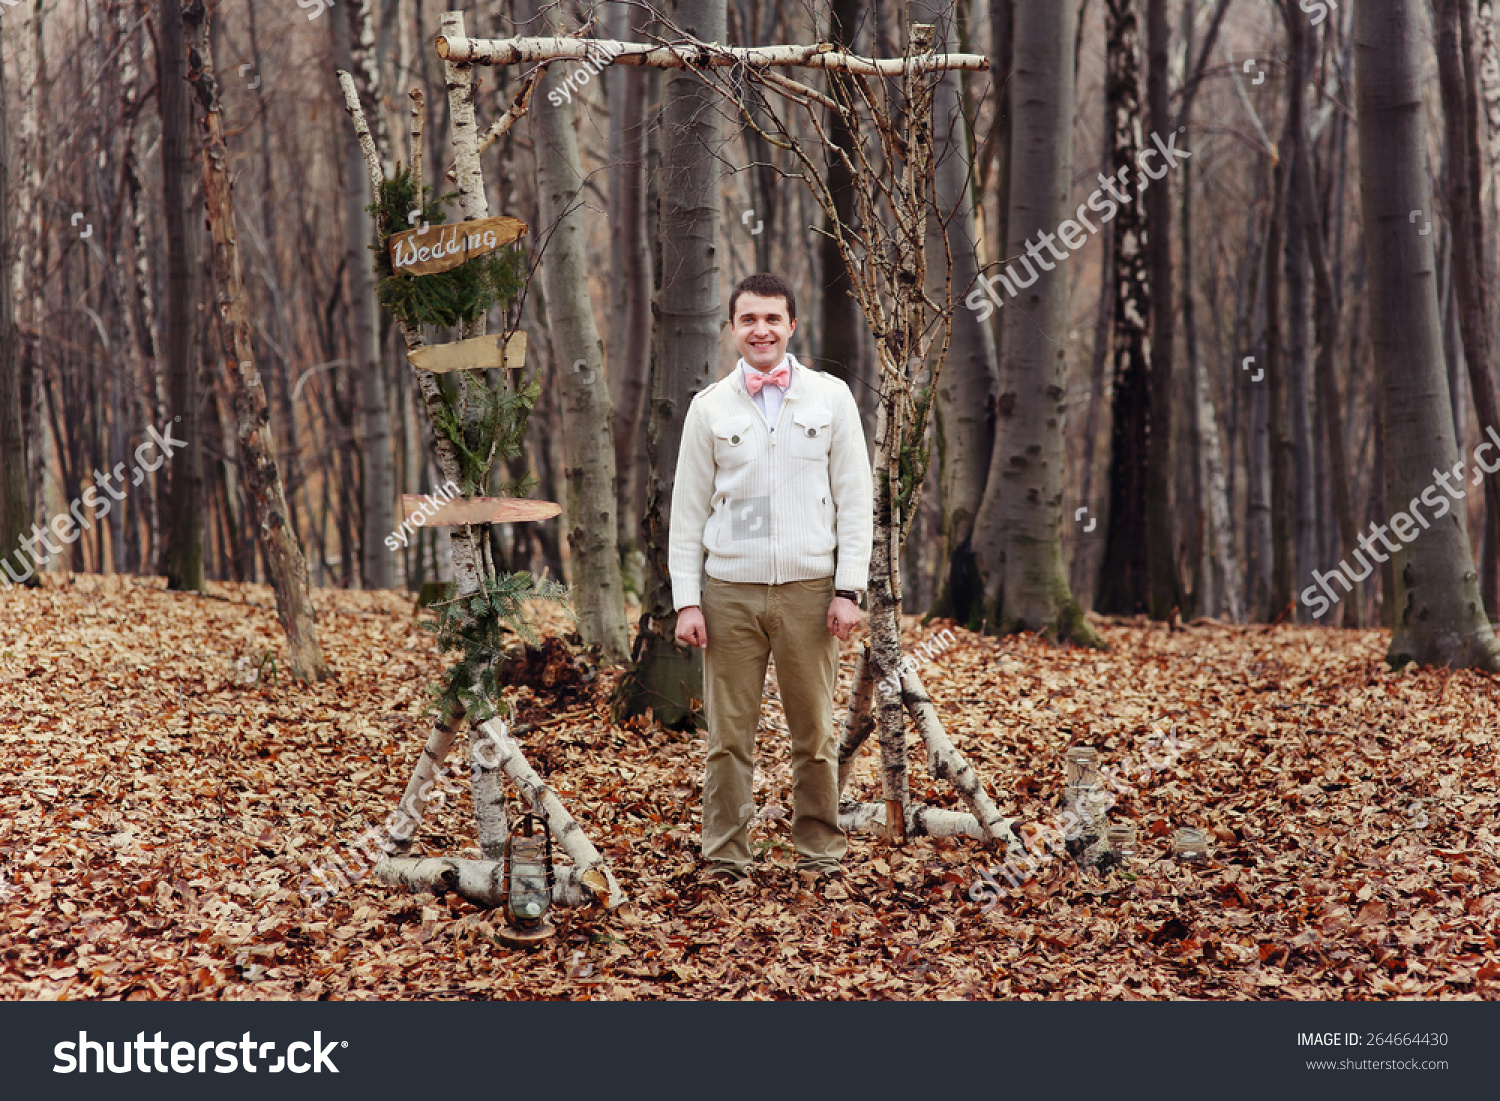 60 Non Traditional Wedding Vows: Groom Waiting Bride In Tge Forest. Wedding Ceremony Stock